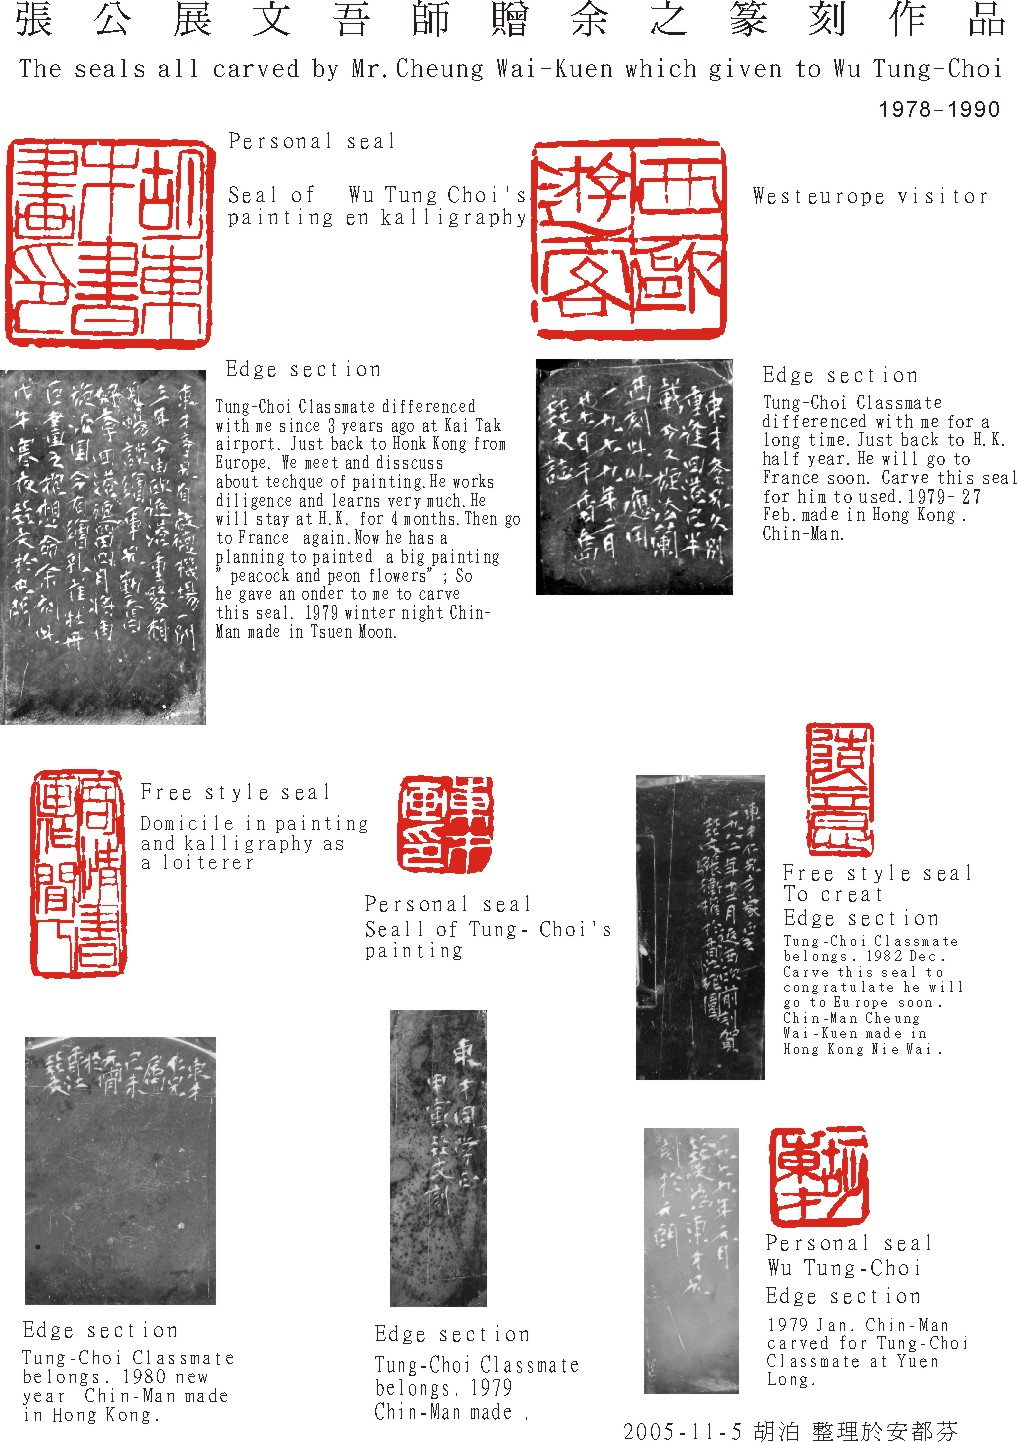 heirloom seal of the realm 授官授印与集权制度 conferring official positions and seals, totalitarian system.